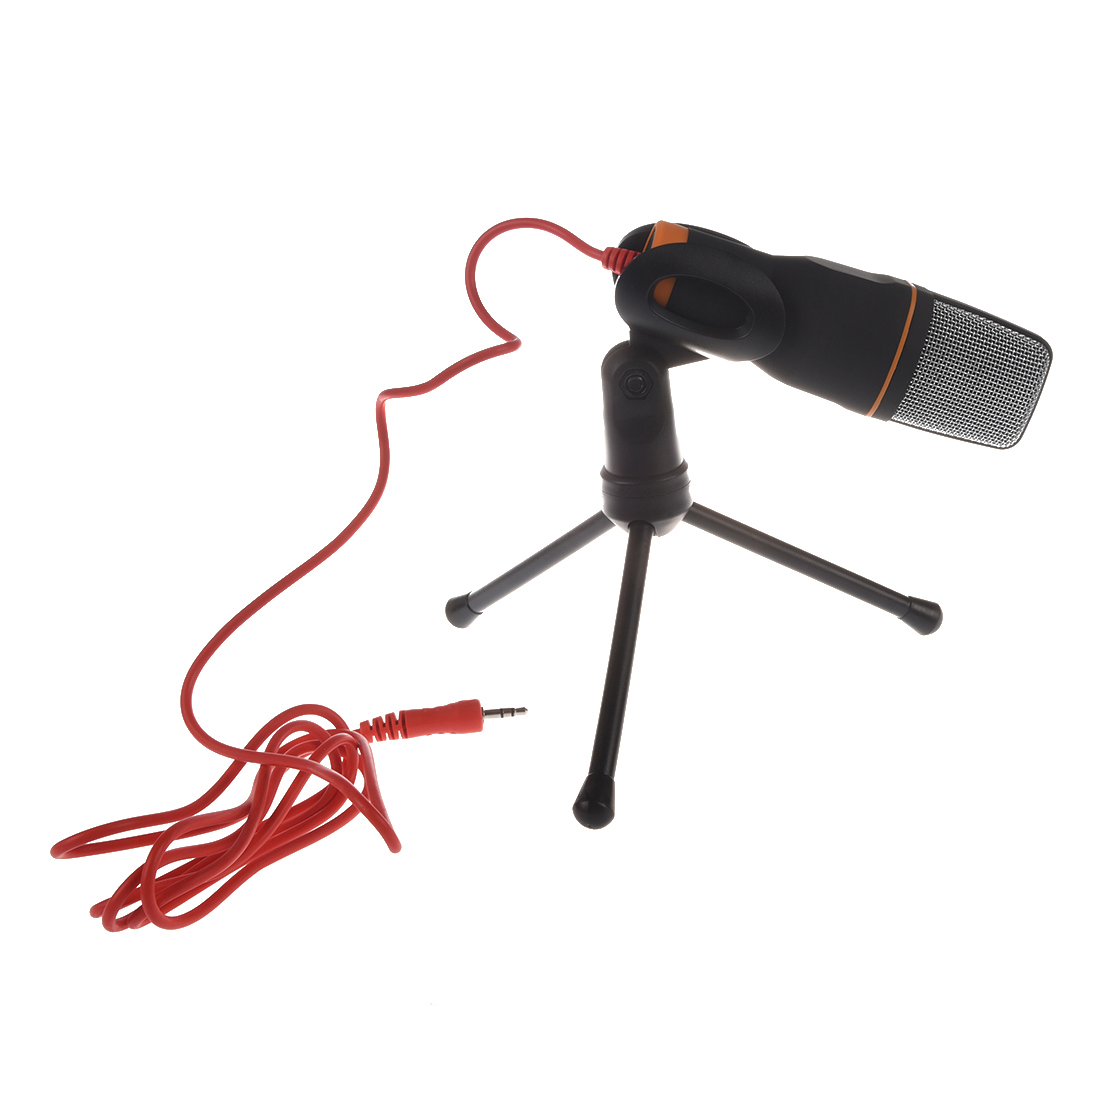 Microphone Thzy 35mm Audio Jack Connection Condenser Sound 3 5mm Wiring With Tripod For Computer Laptop Black In Microphones From Consumer Electronics On